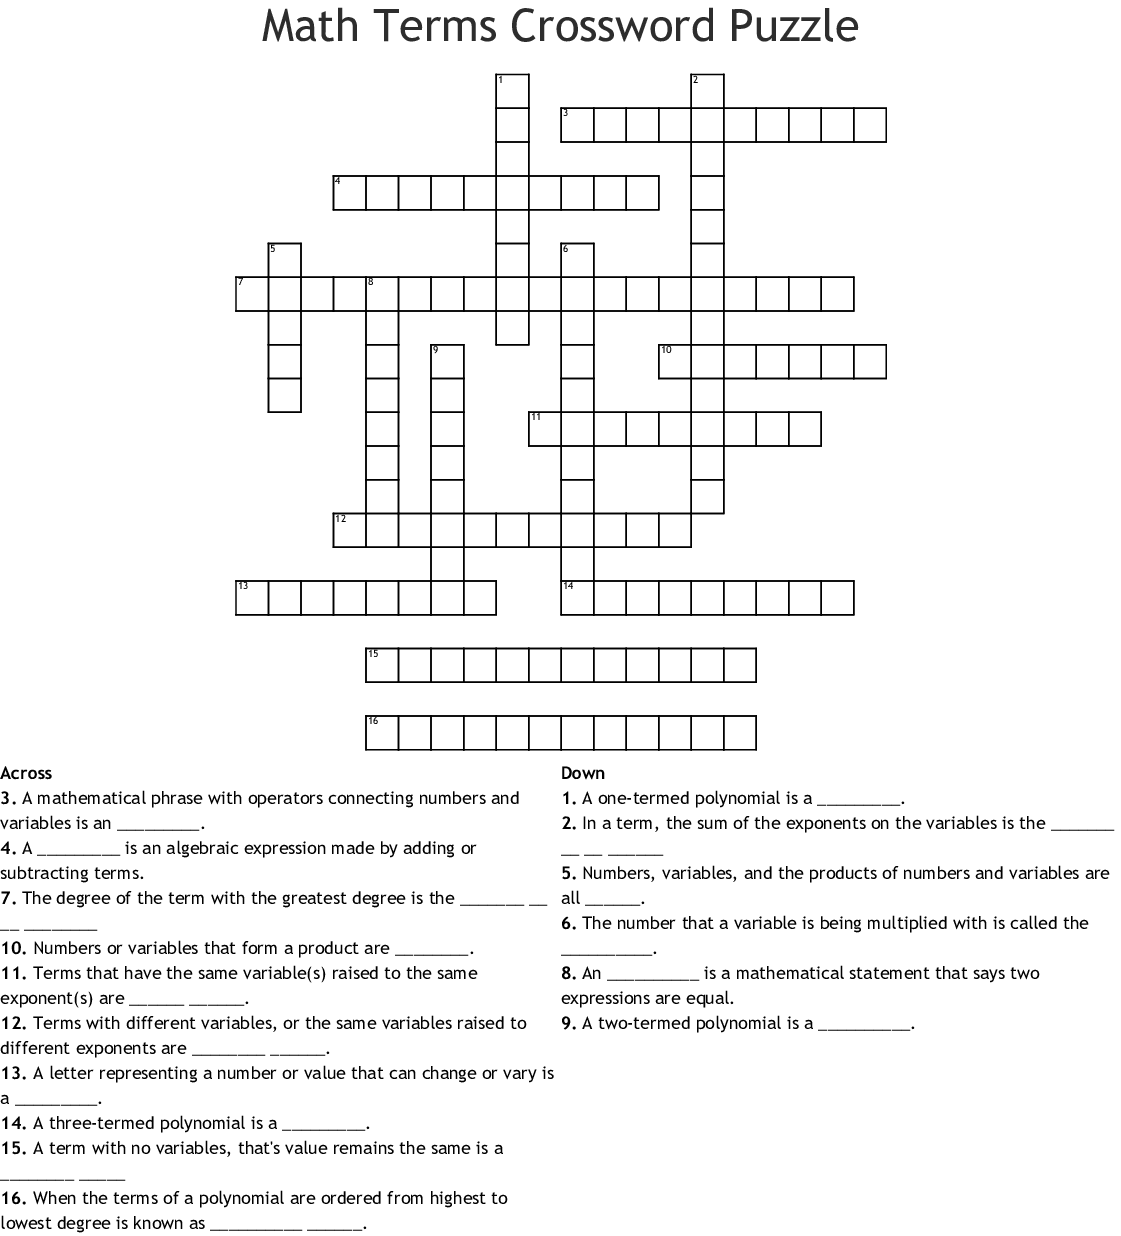 Crossword Puzzle Of Maths Vocabulary